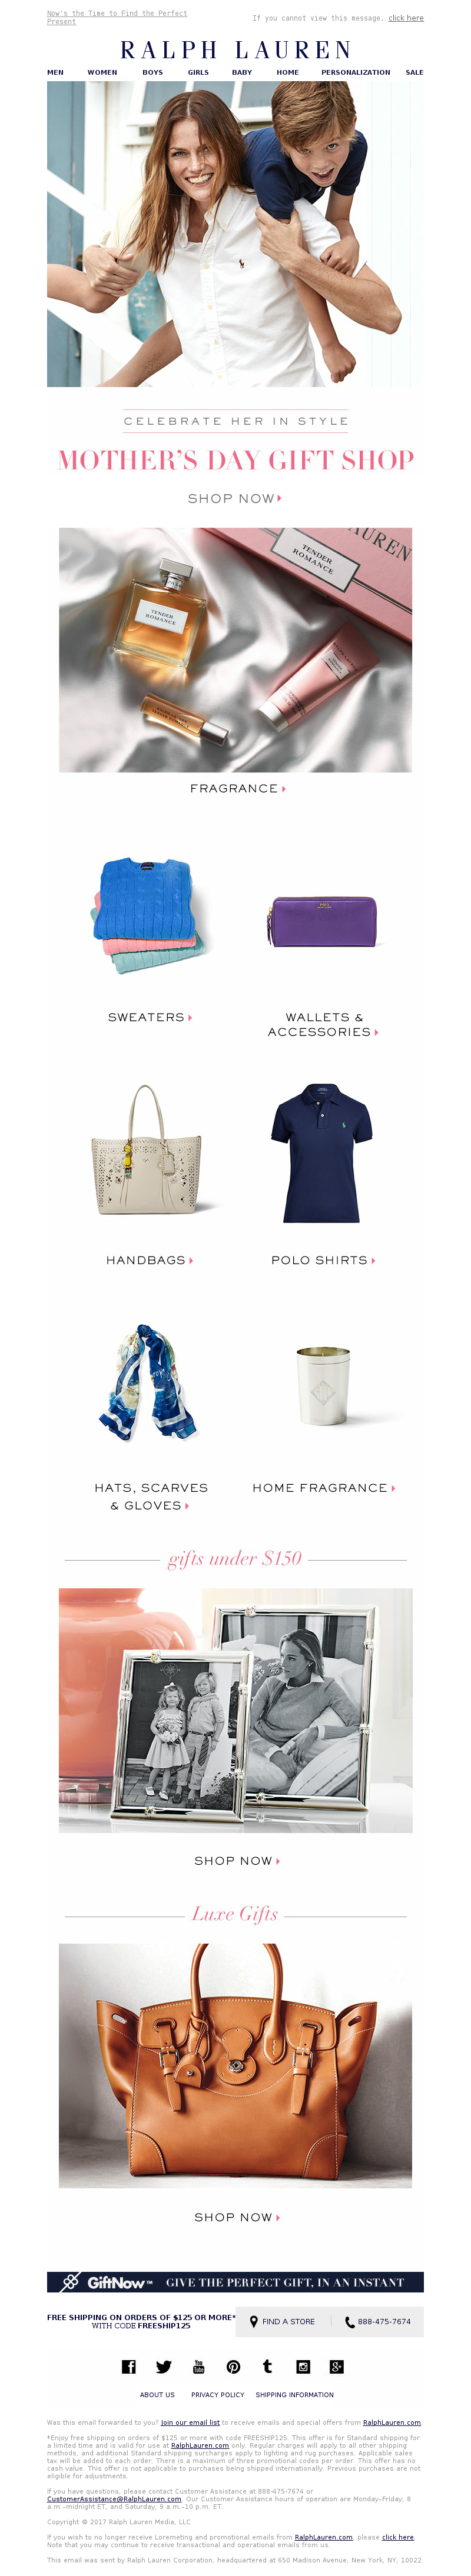 Mother's Day email example from Ralph Lauren